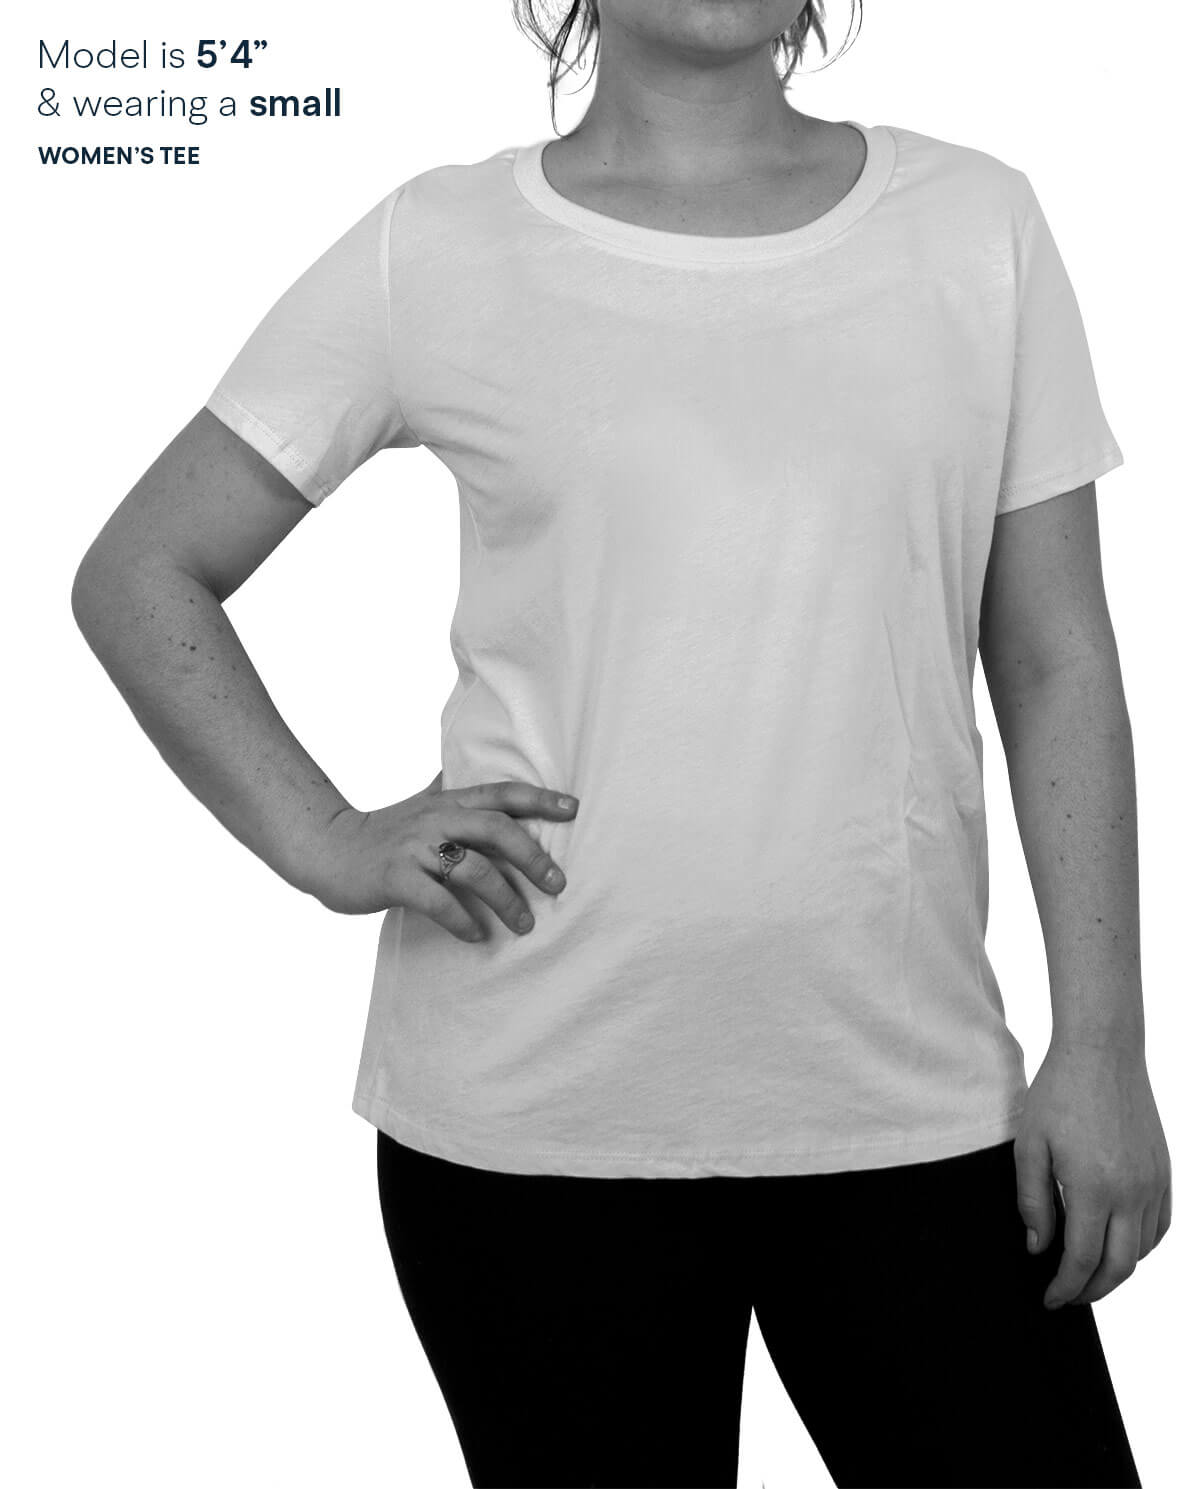 Woman modeling t-shirt